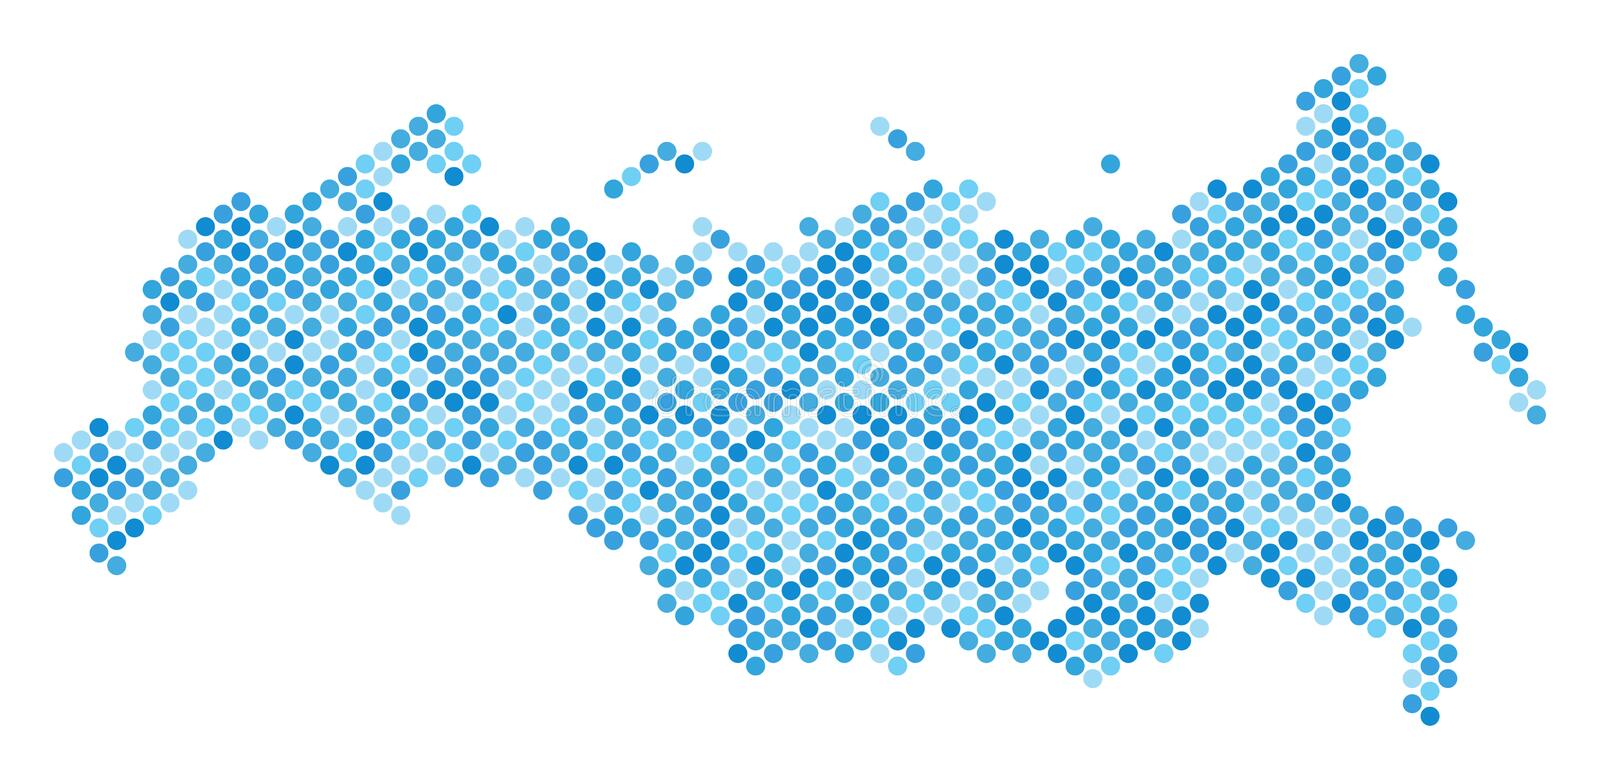 Blue Dotted Russia Map stock illustration